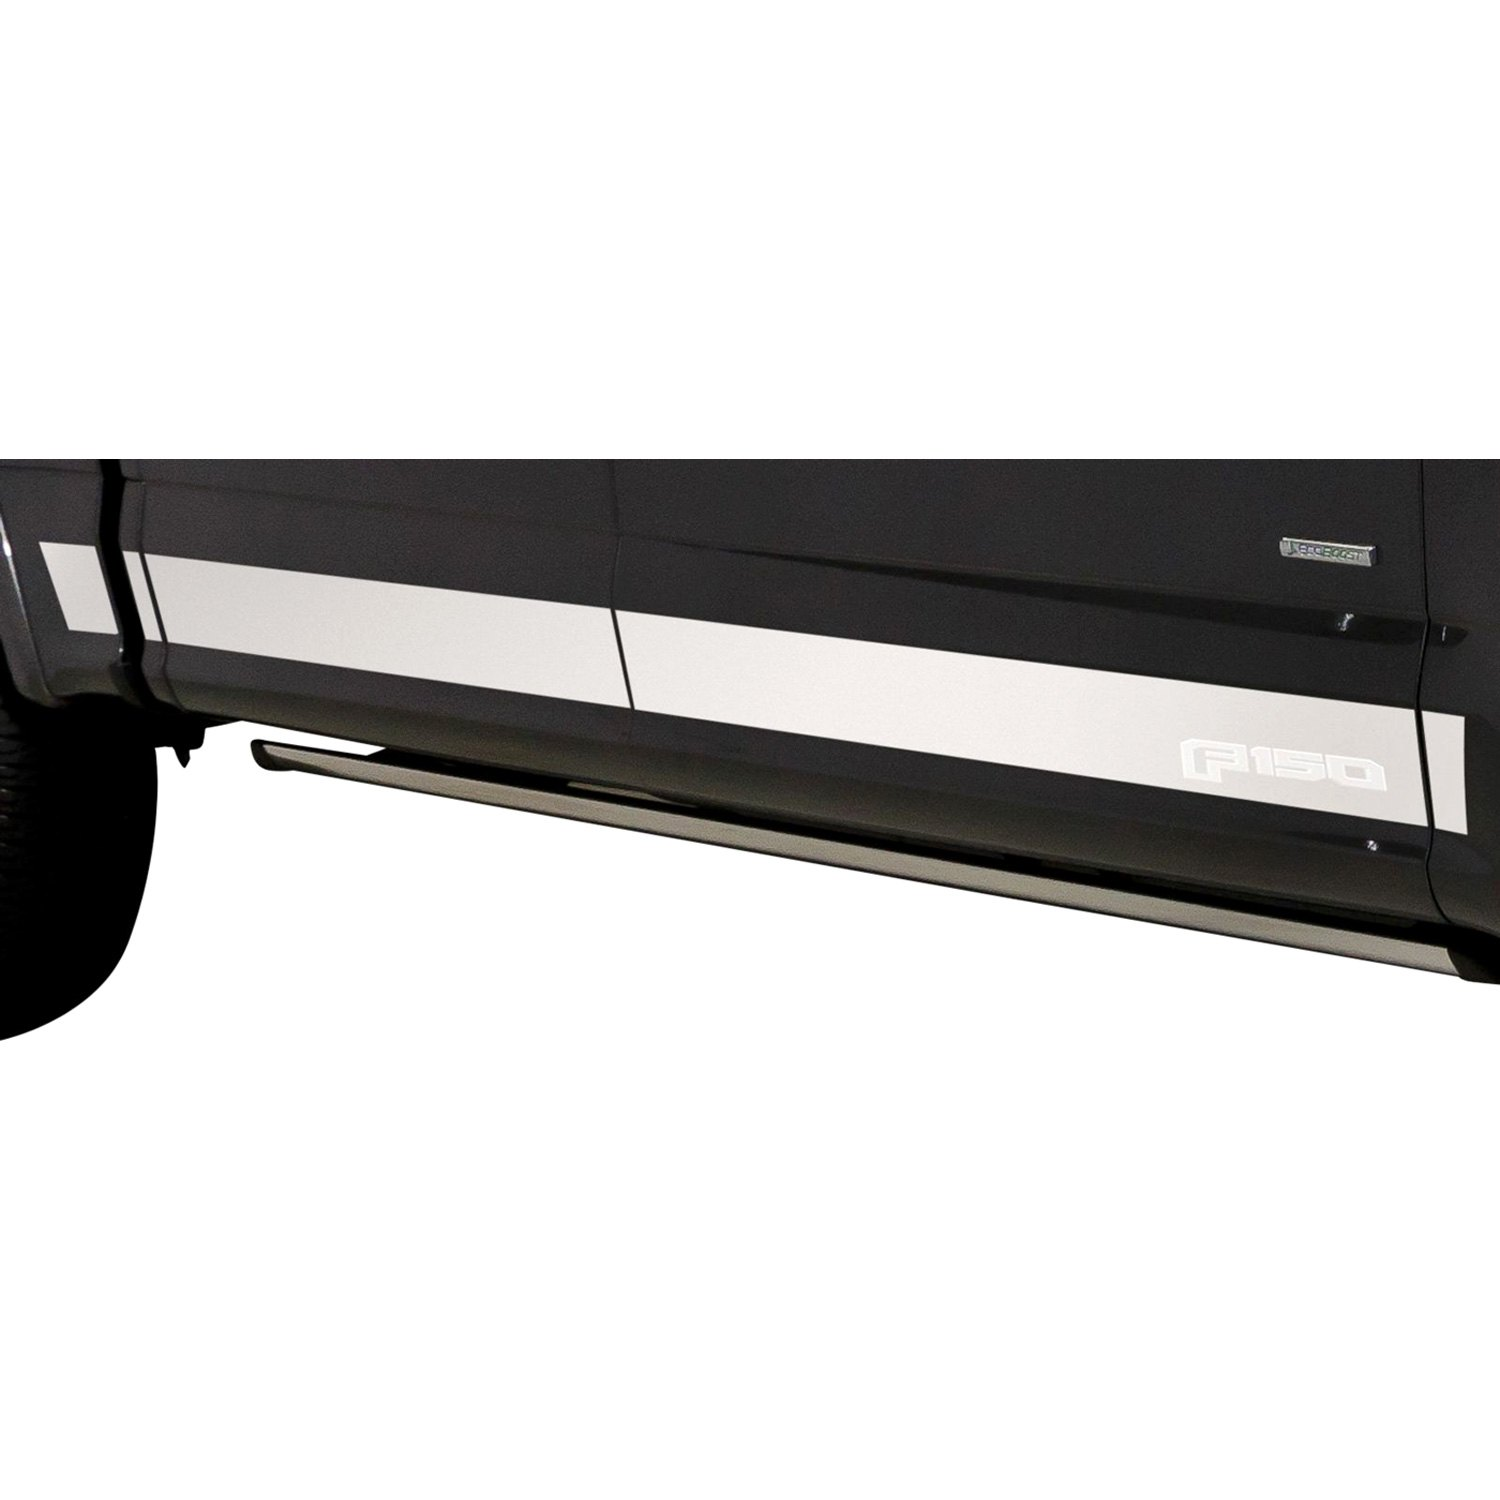 Ford F-150 2016 Ford Licensed Rocker Panel Covers